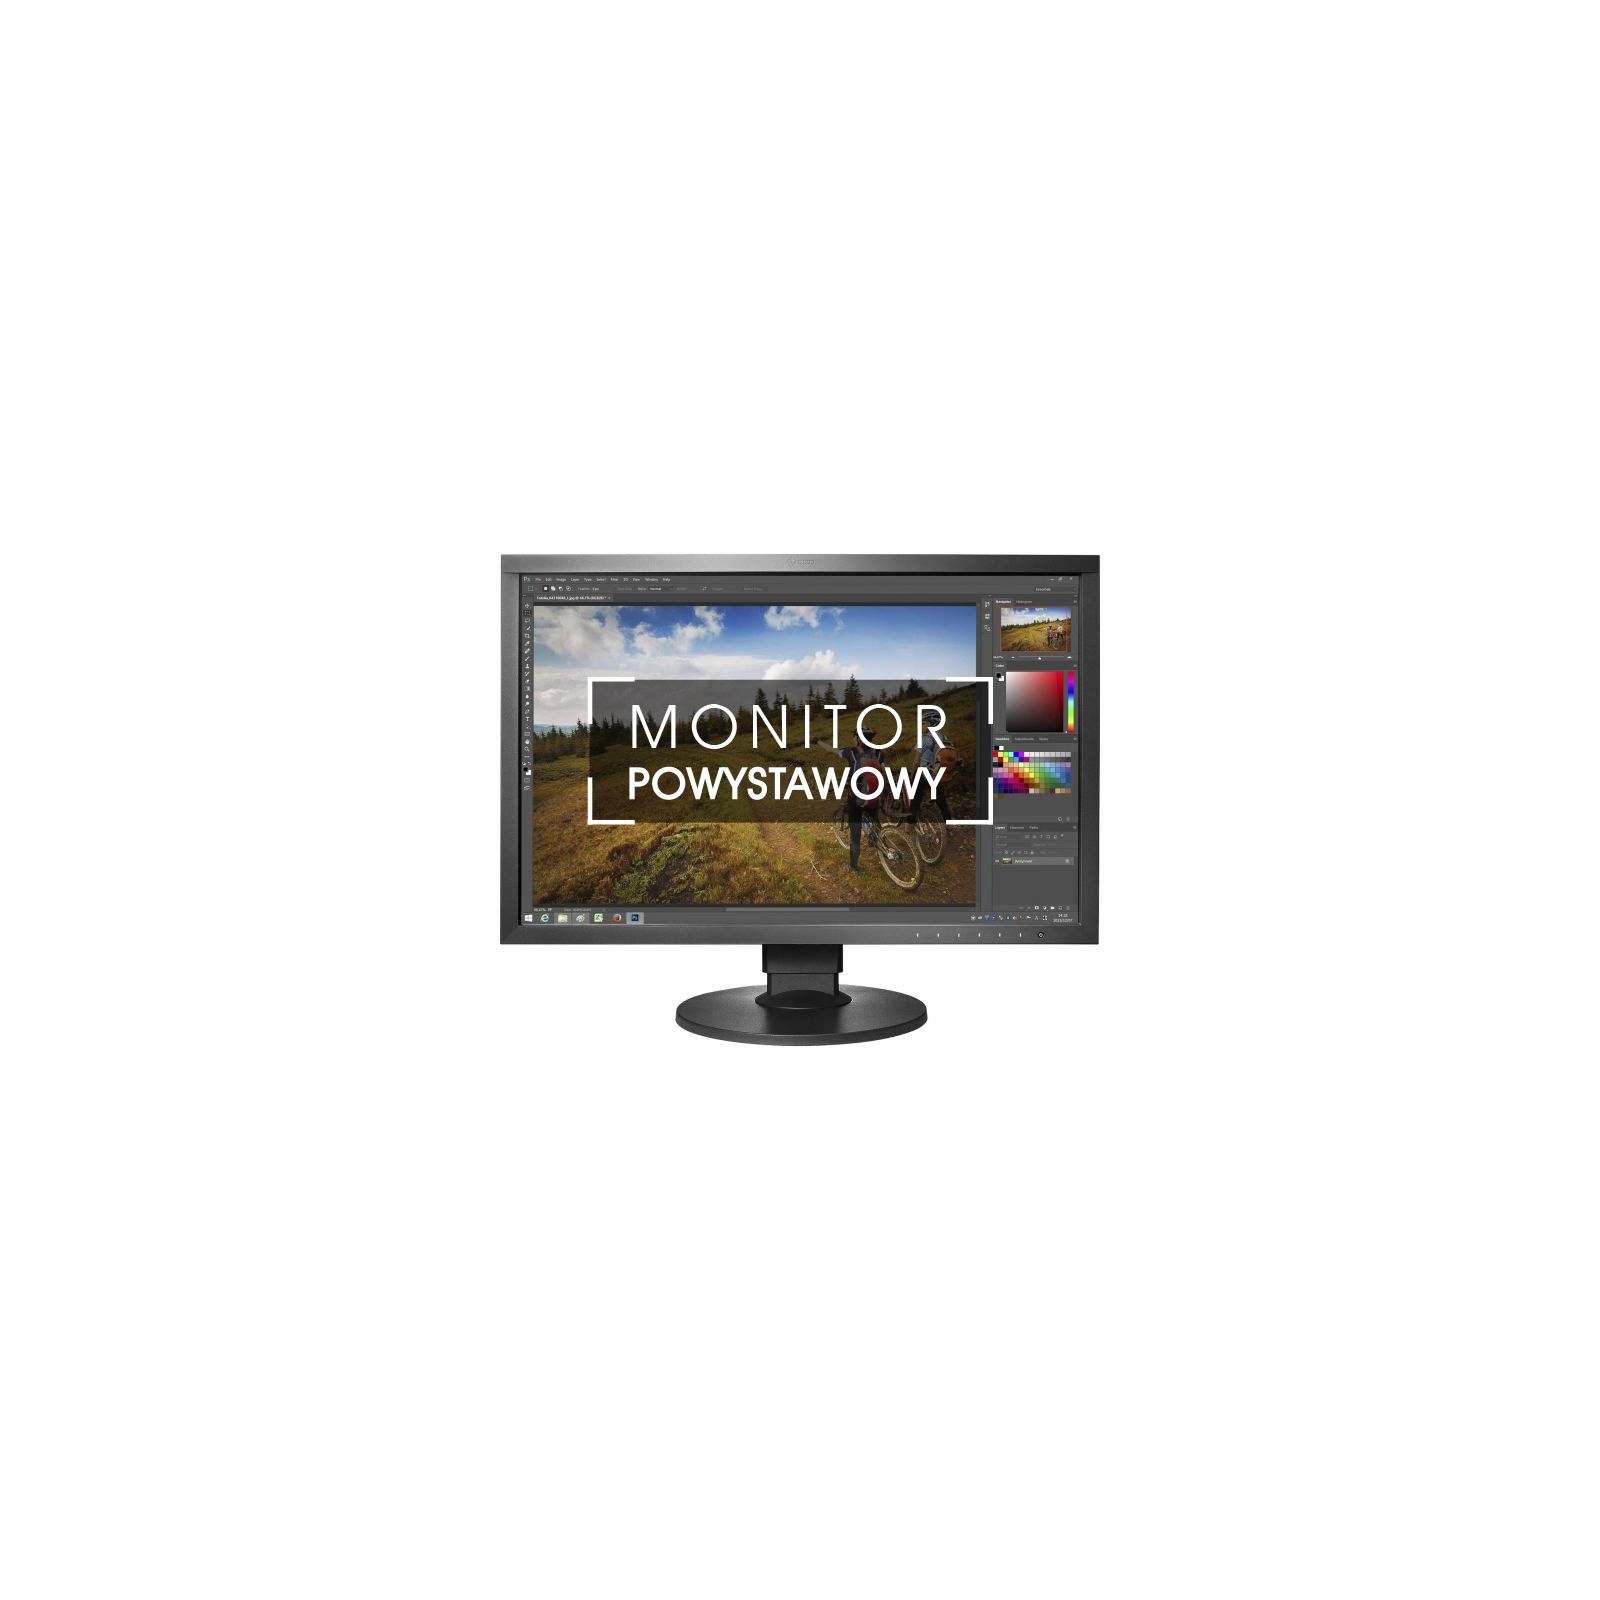 "Monitor 24"" Eizo ColorEdge CS2420 + licencja ColorNavigator"